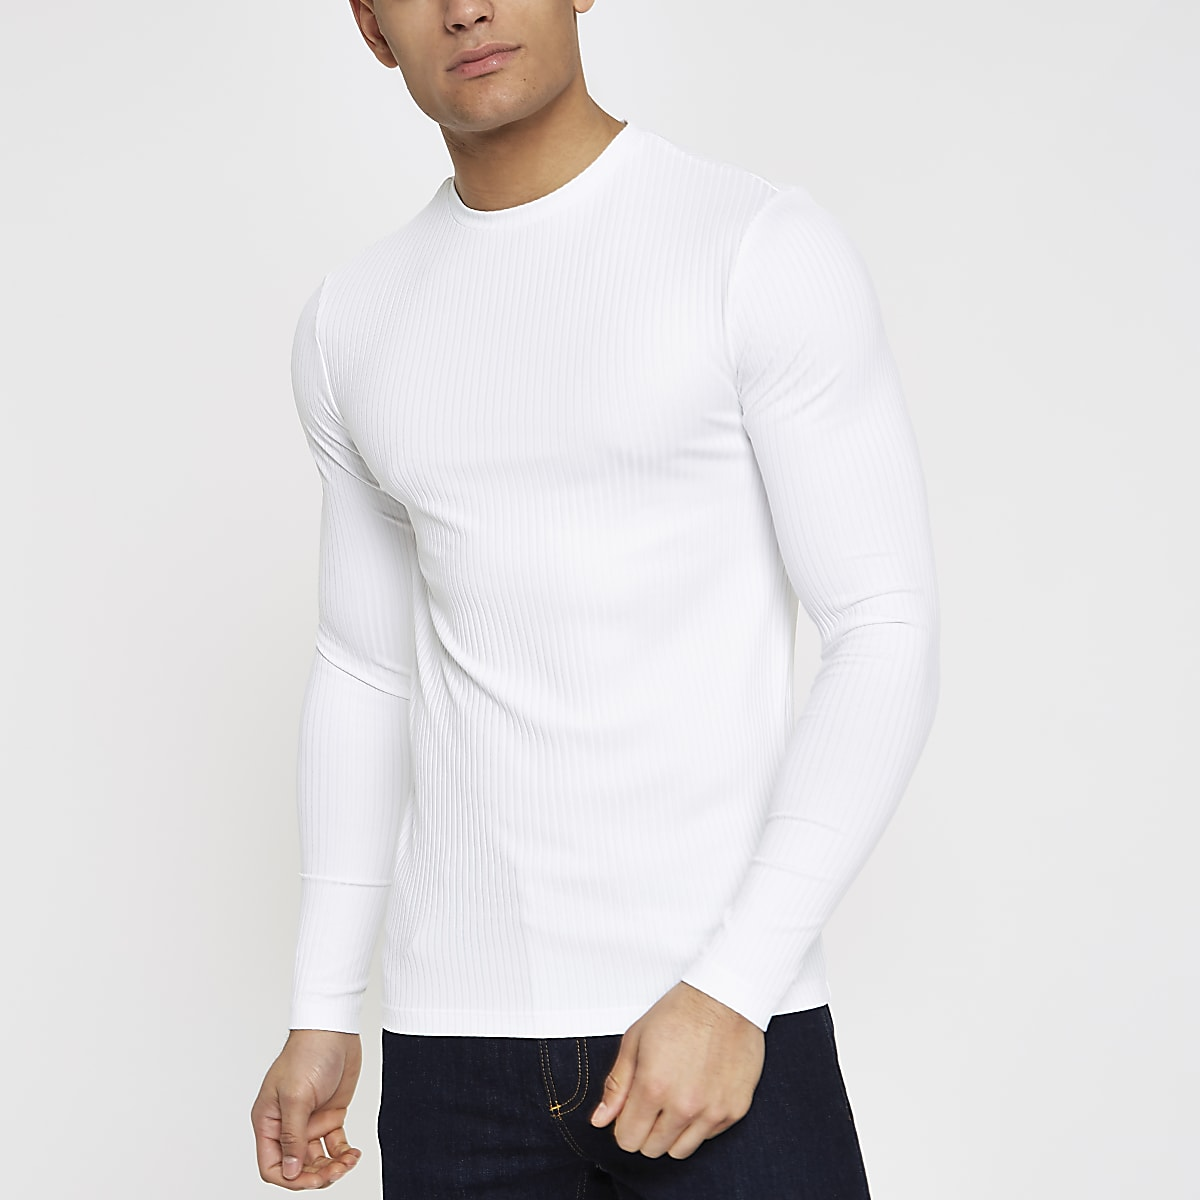 d7f54aa5cc45f White ribbed crew neck long sleeve top - Long Sleeve T-Shirts - T-Shirts    Vests - men